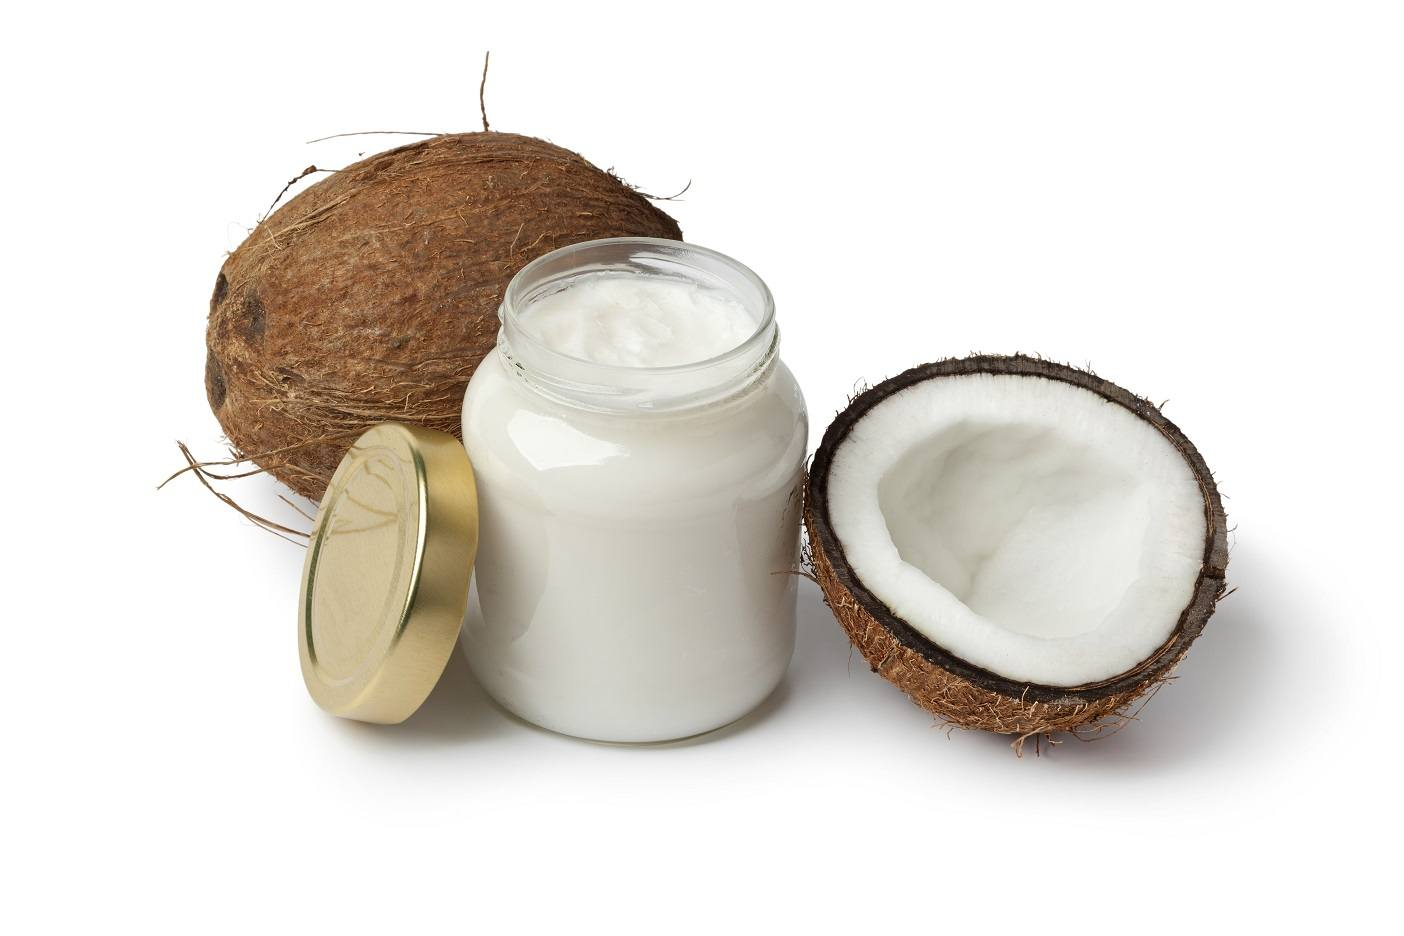 Coconut oil and fresh coconut on white background image